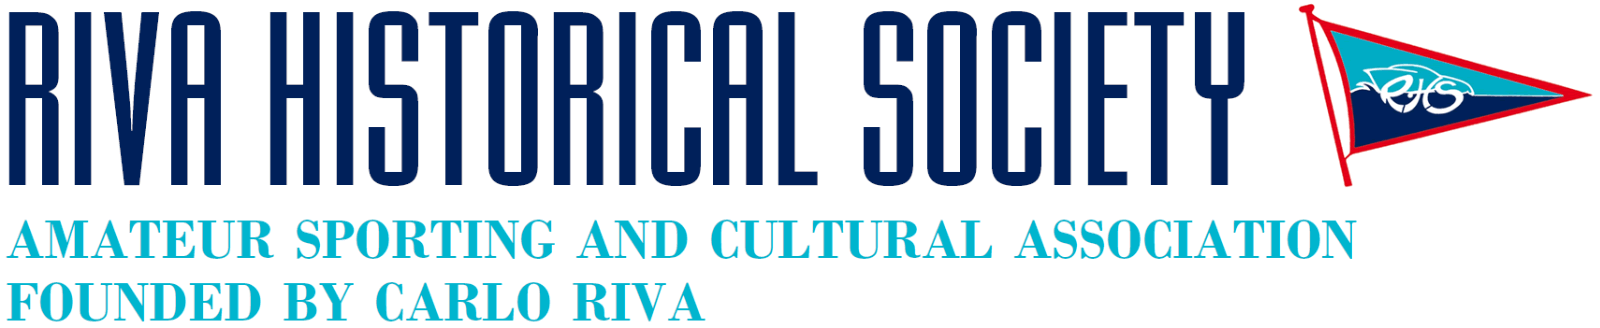 RIVA HISTORICAL SOCIETY | Amateur sports and cultural Association founded by Carlo Riva.